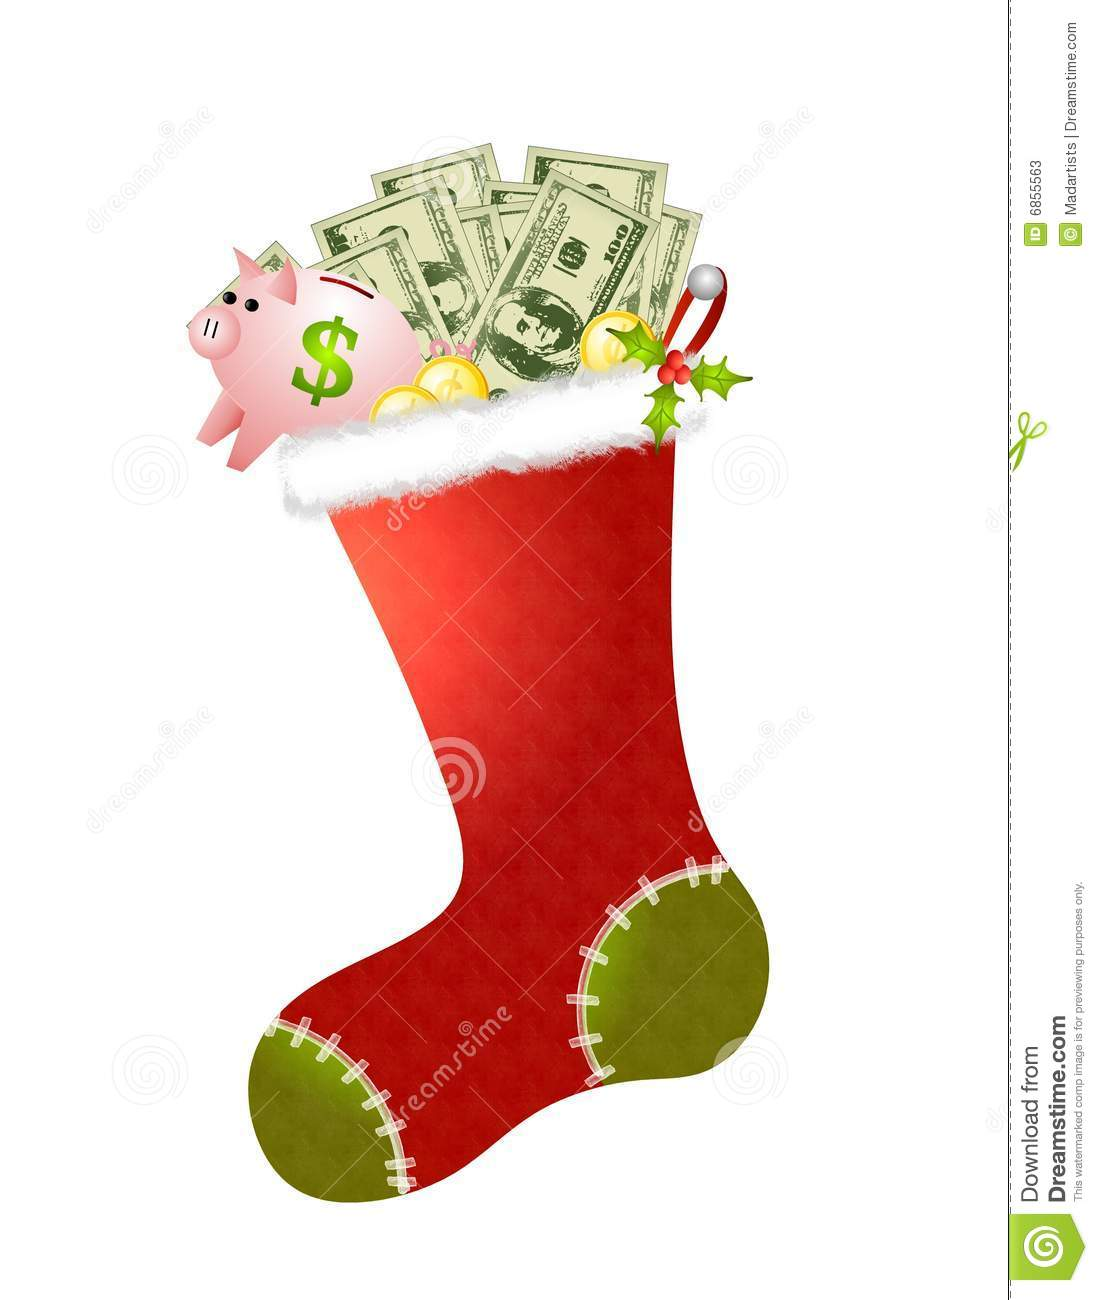 Stocking Full of Cash stock illustration. Illustration of ...